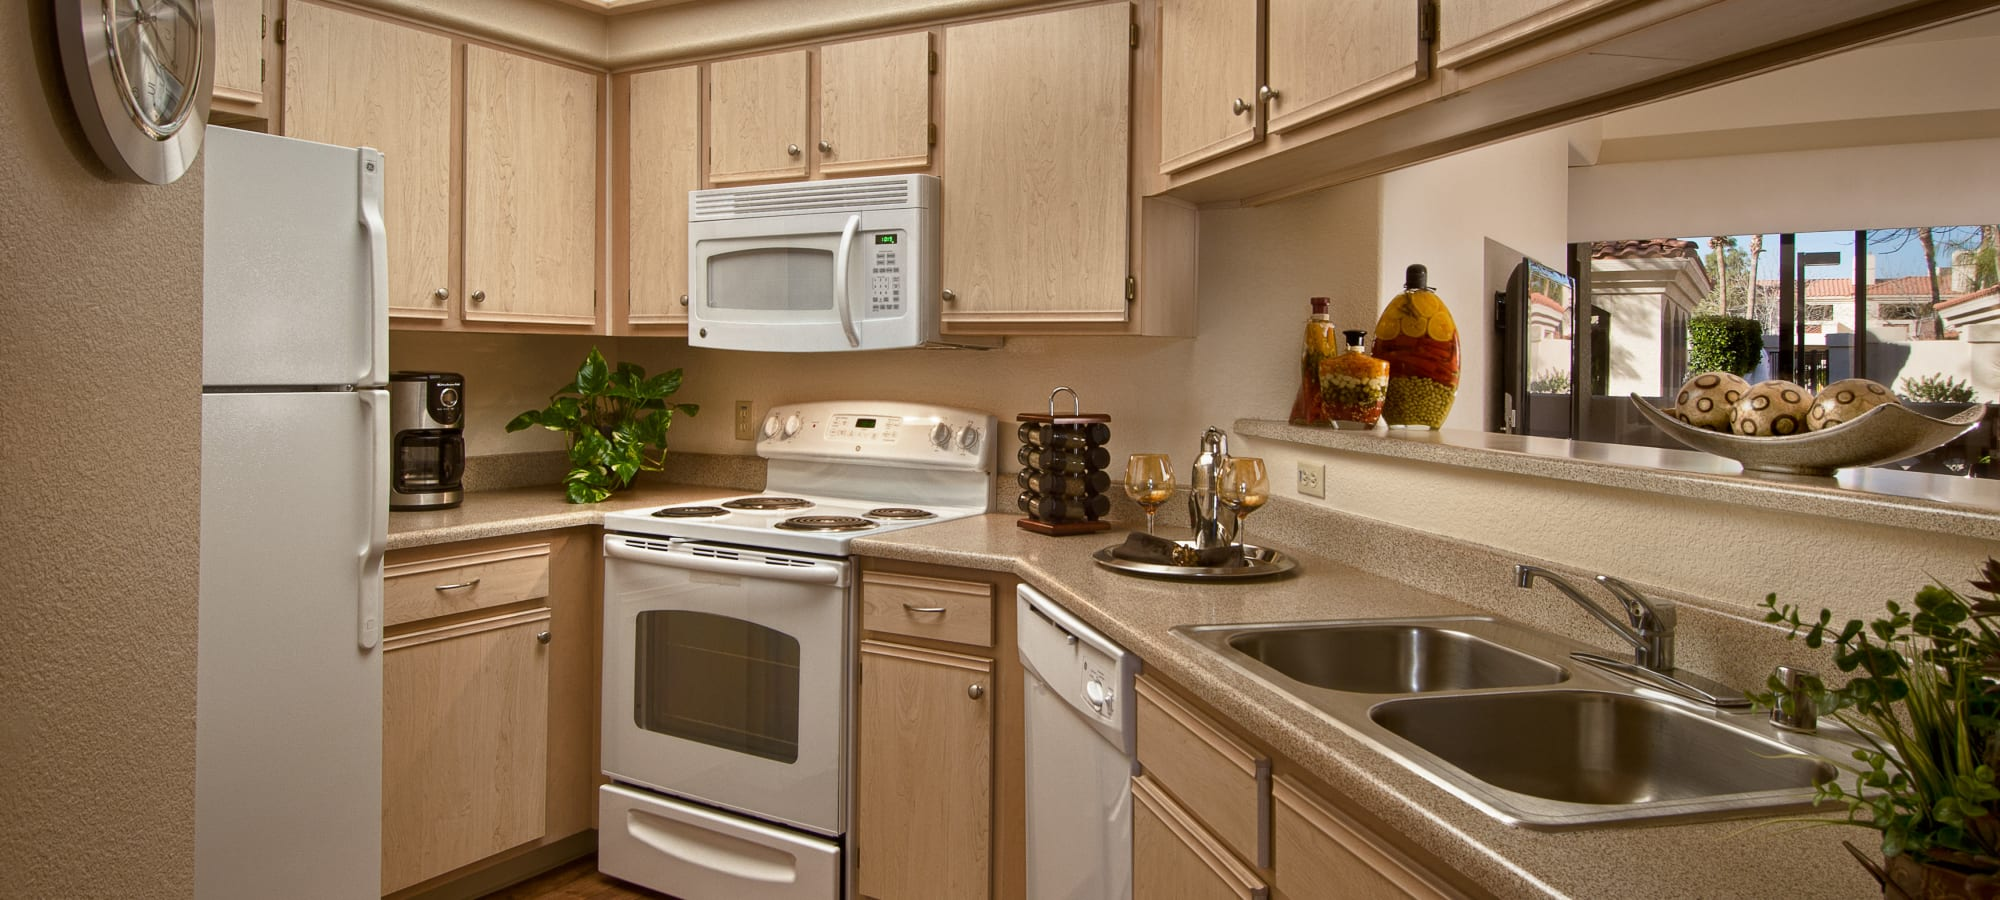 Granite countertops and a light color scheme in a model home's kitchen at San Palmilla in Tempe, Arizona